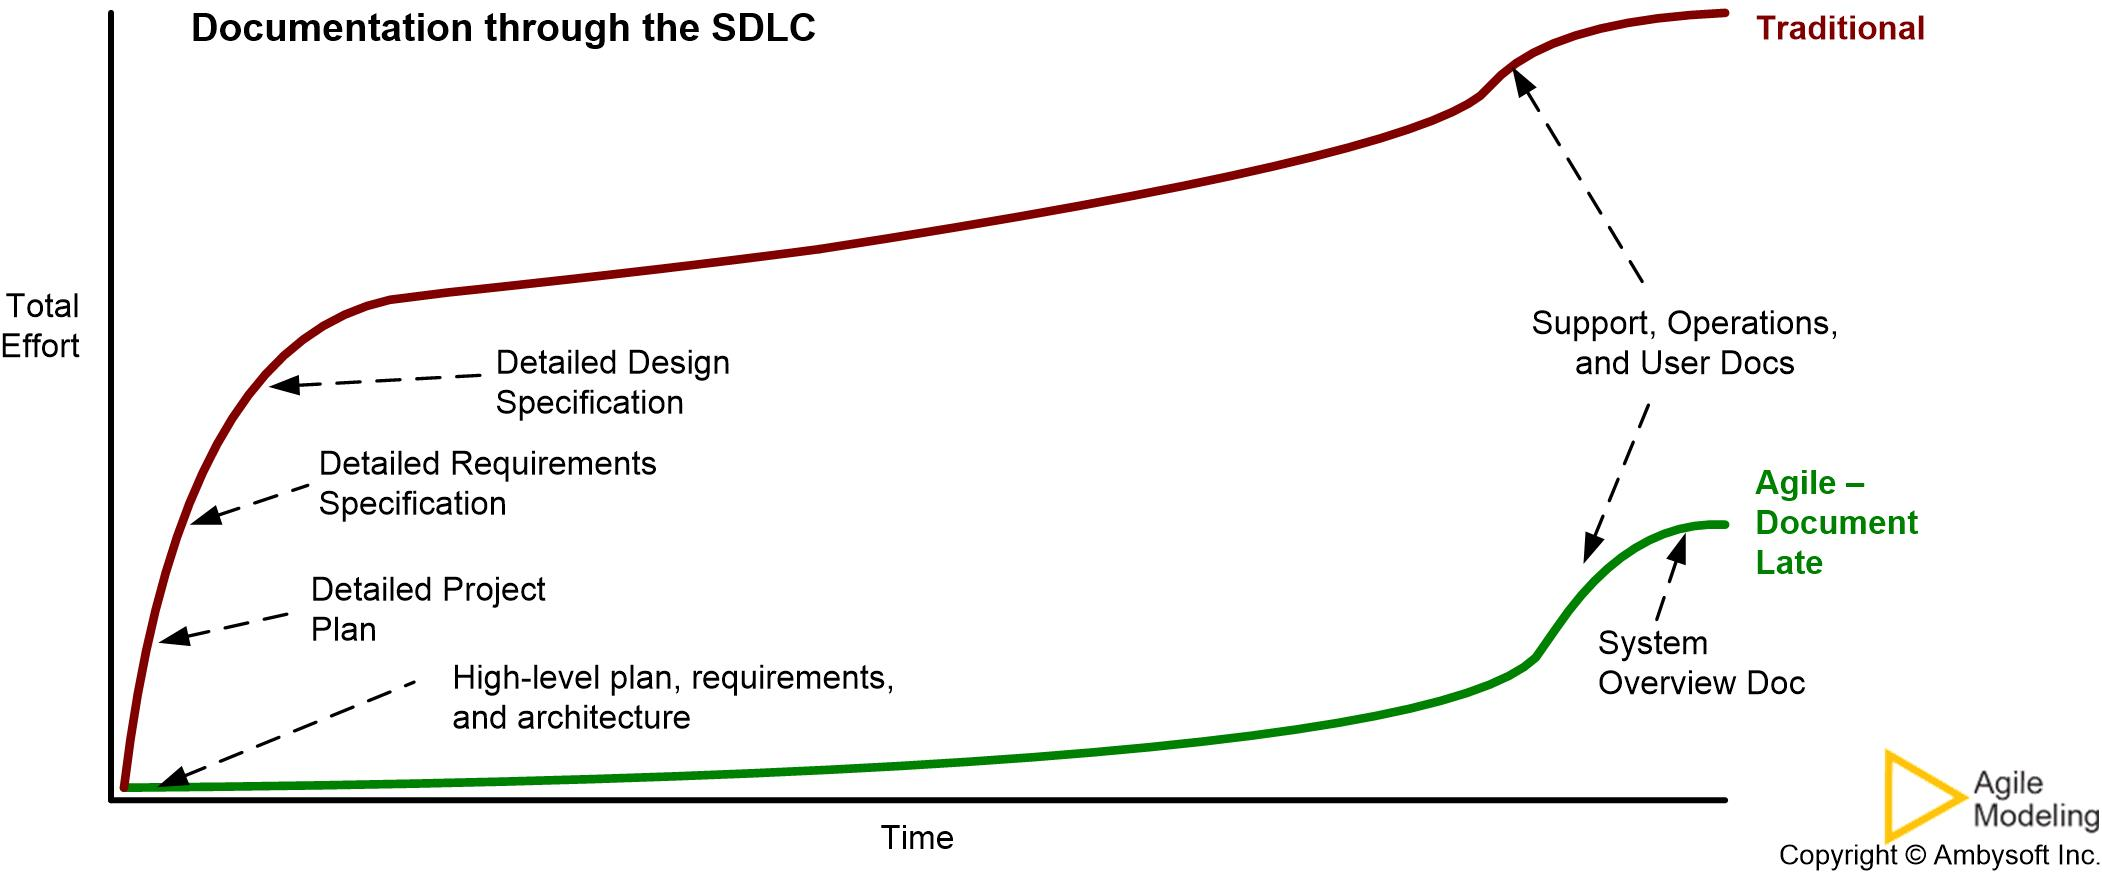 Document Late An Agile Core Practice